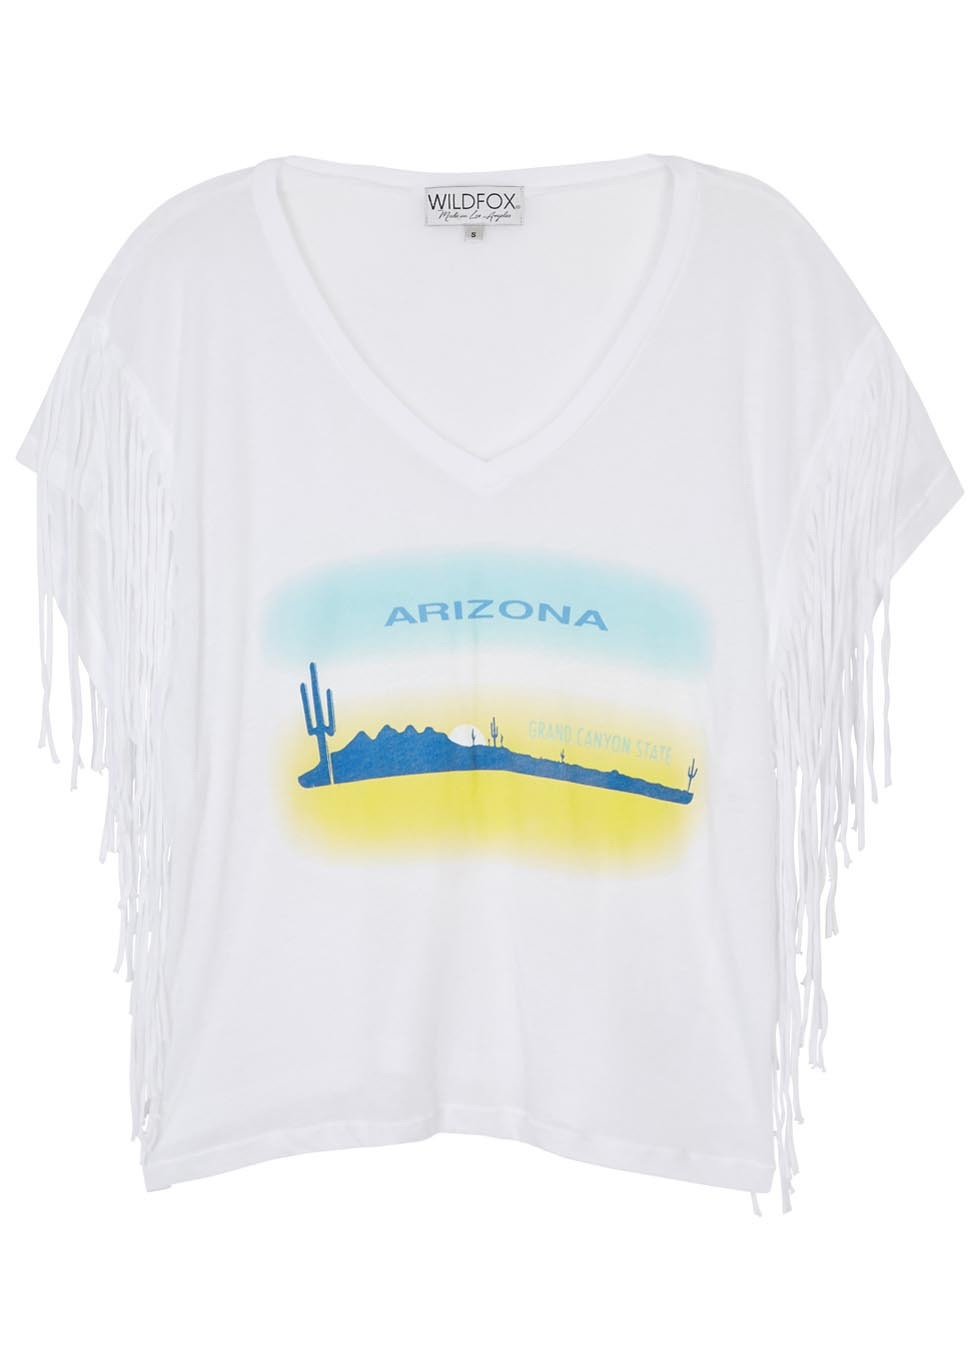 Arizona Heat Fringed Fine Knit T Shirt - neckline: v-neck; sleeve style: dolman/batwing; style: t-shirt; predominant colour: white; secondary colour: yellow; occasions: casual; length: standard; fibres: cotton - stretch; fit: loose; sleeve length: short sleeve; pattern type: fabric; pattern size: standard; pattern: patterned/print; texture group: jersey - stretchy/drapey; embellishment: fringing; multicoloured: multicoloured; season: s/s 2016